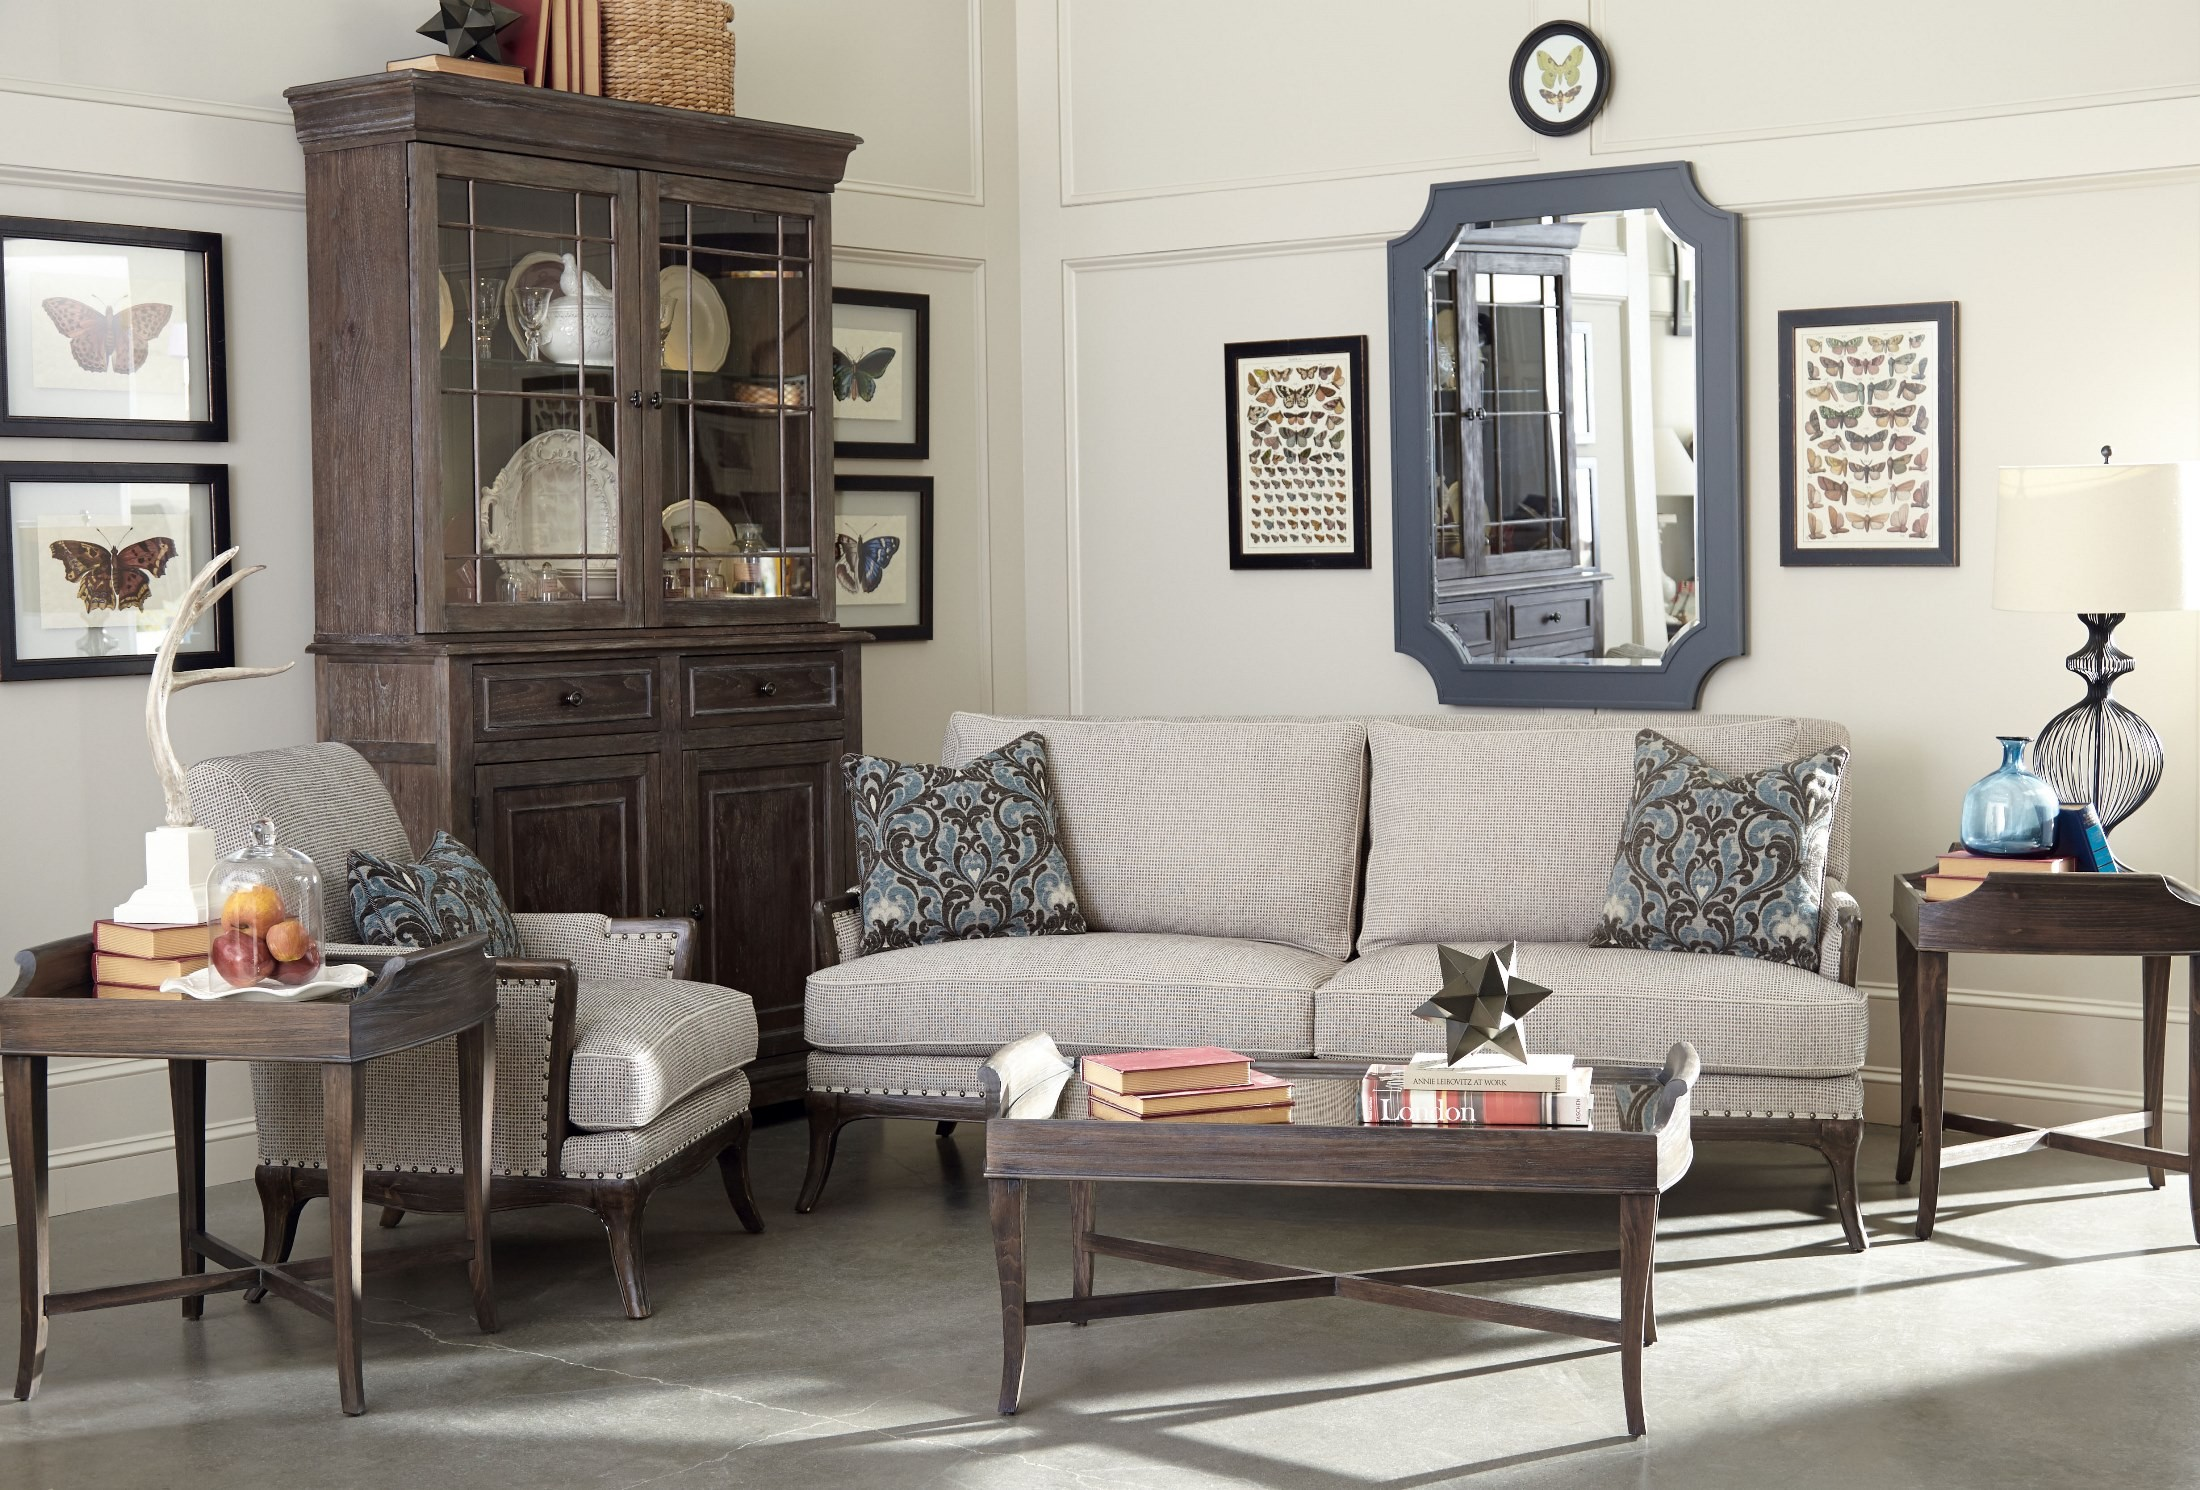 St Germain Siene Pewter Upholstered Living Room Set From Art 515521 5001aa Coleman Furniture